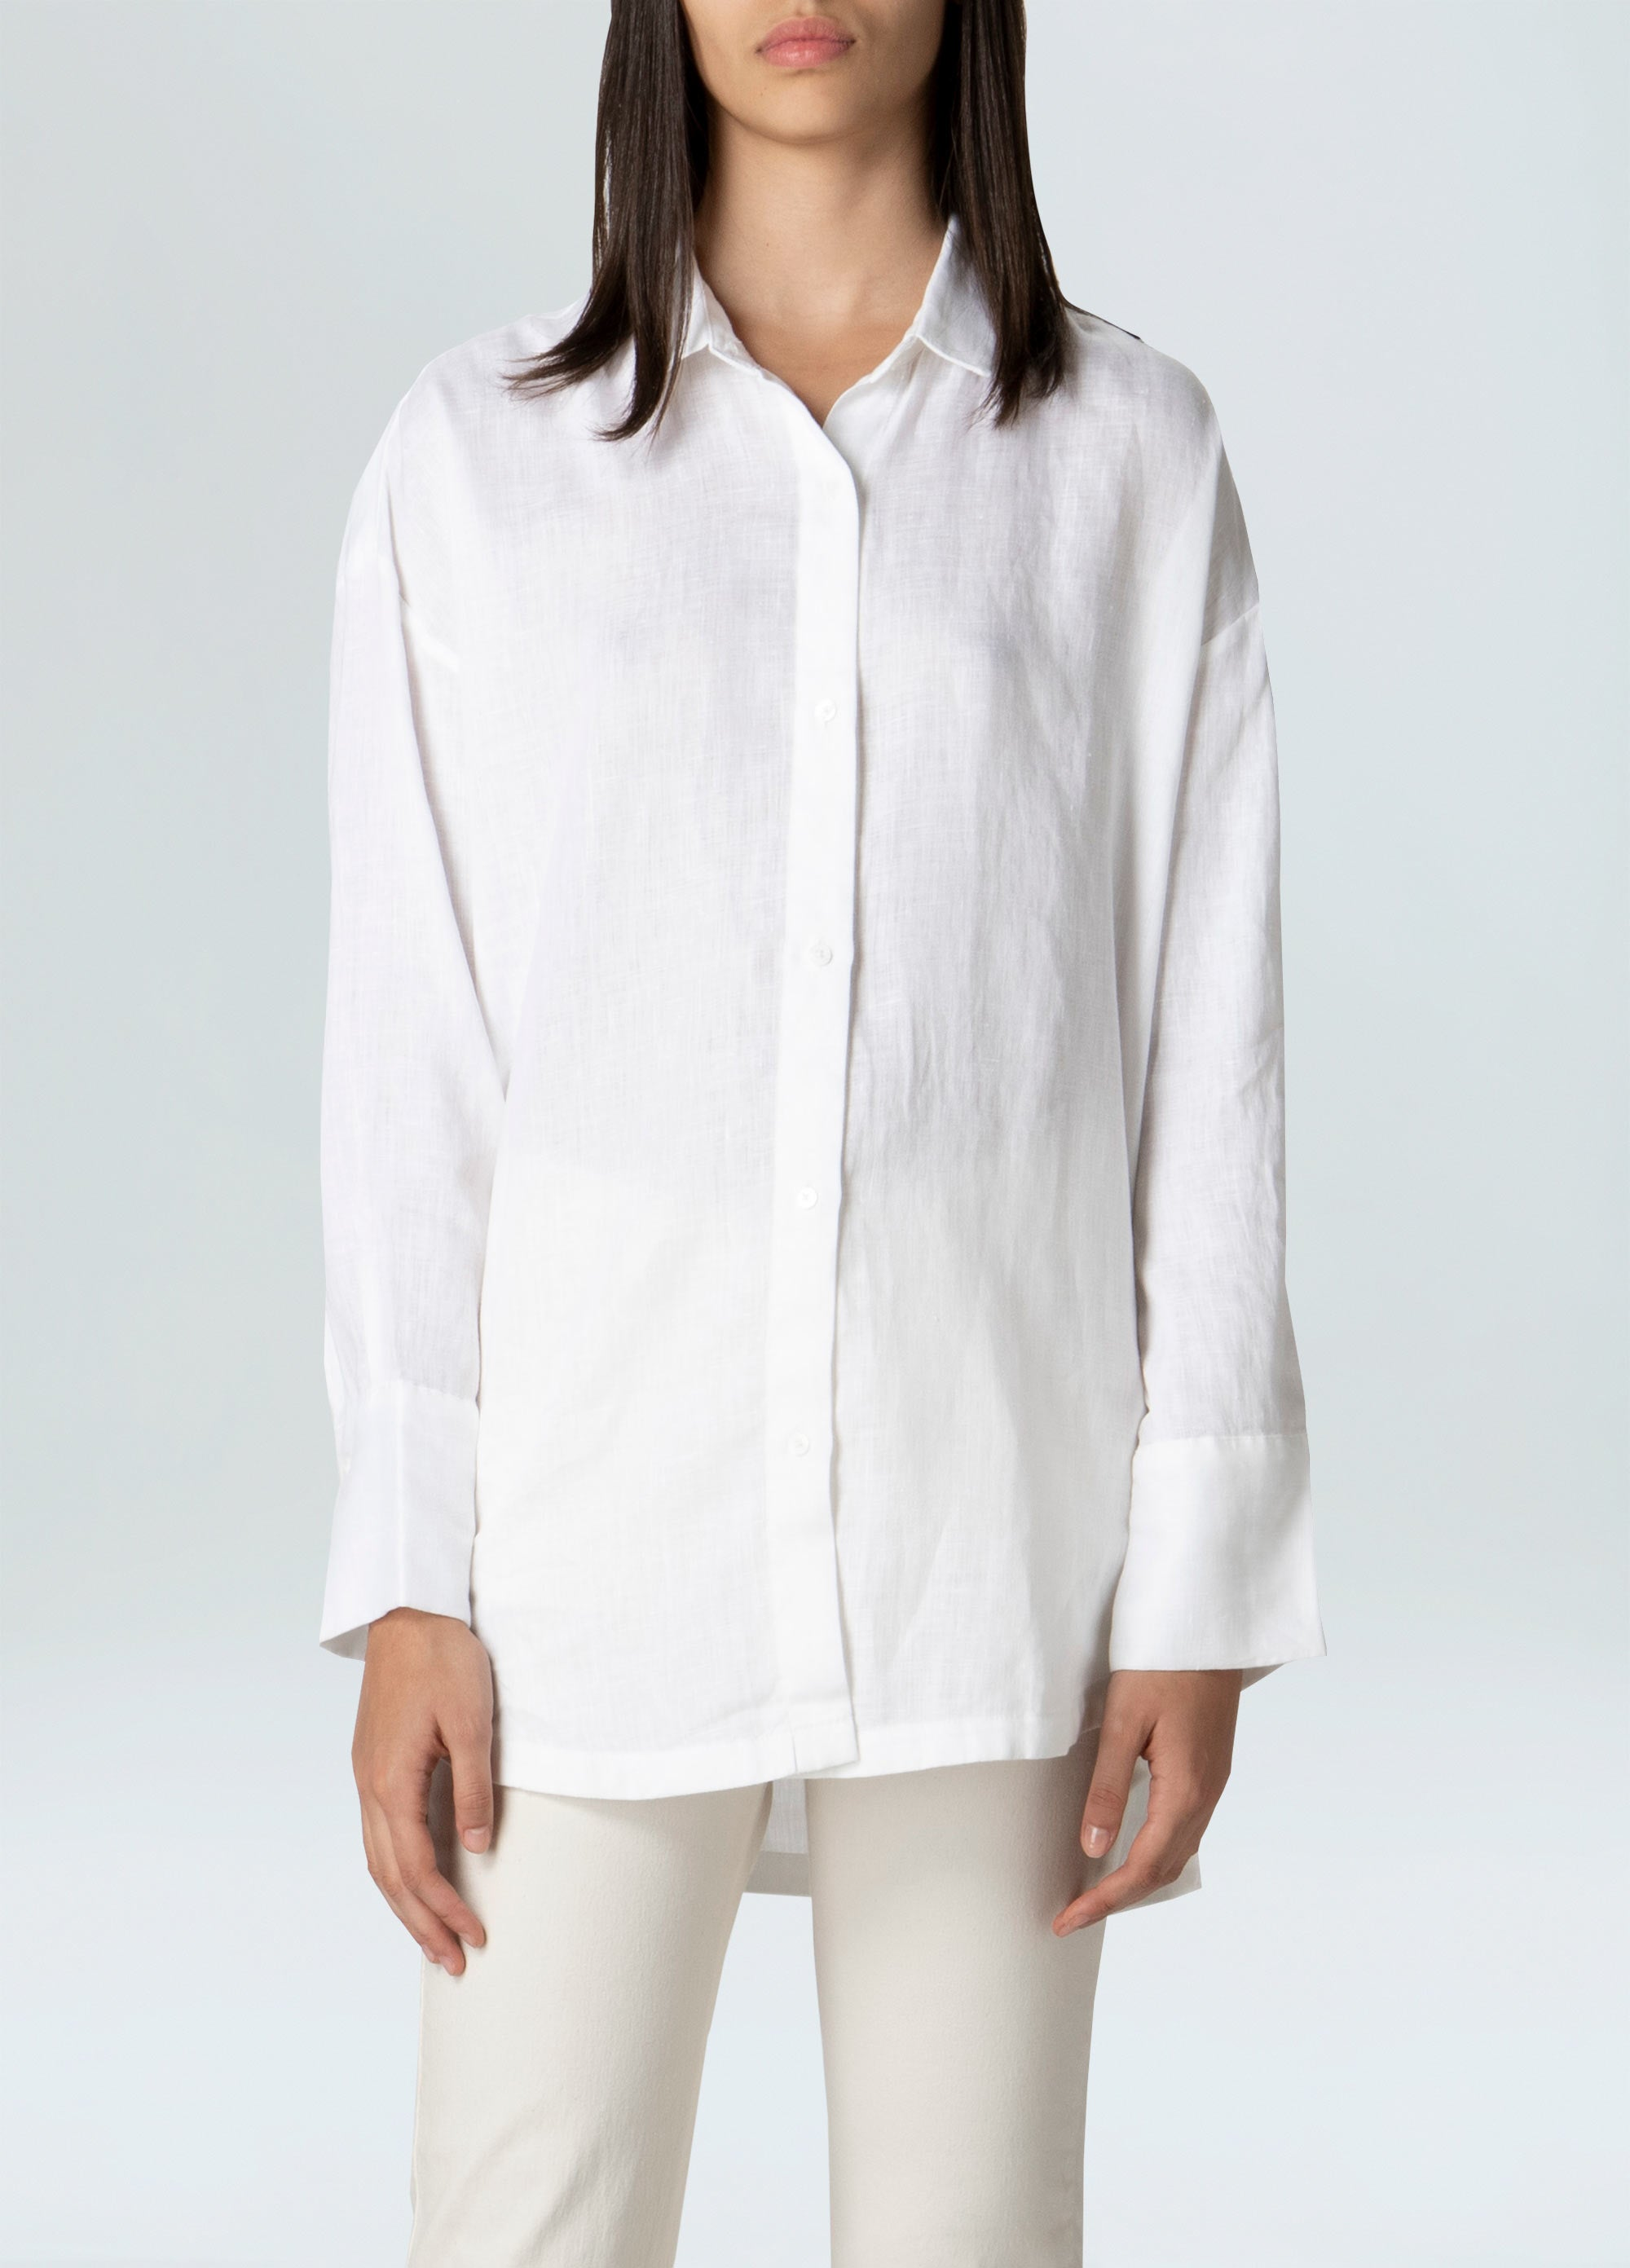 Women's Collared Blouse